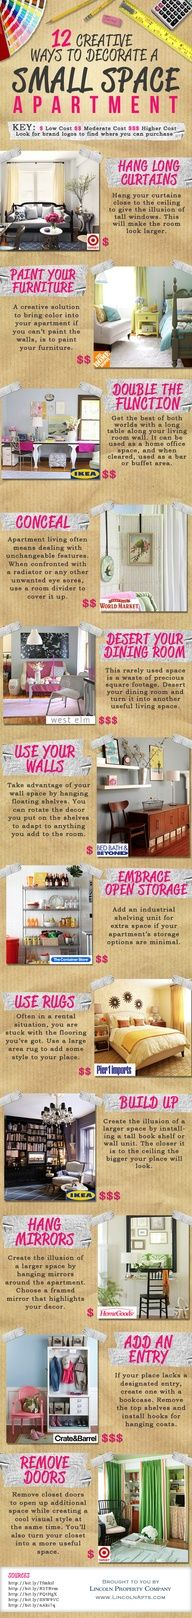 Small space DIY ideas. Also good for small houses.